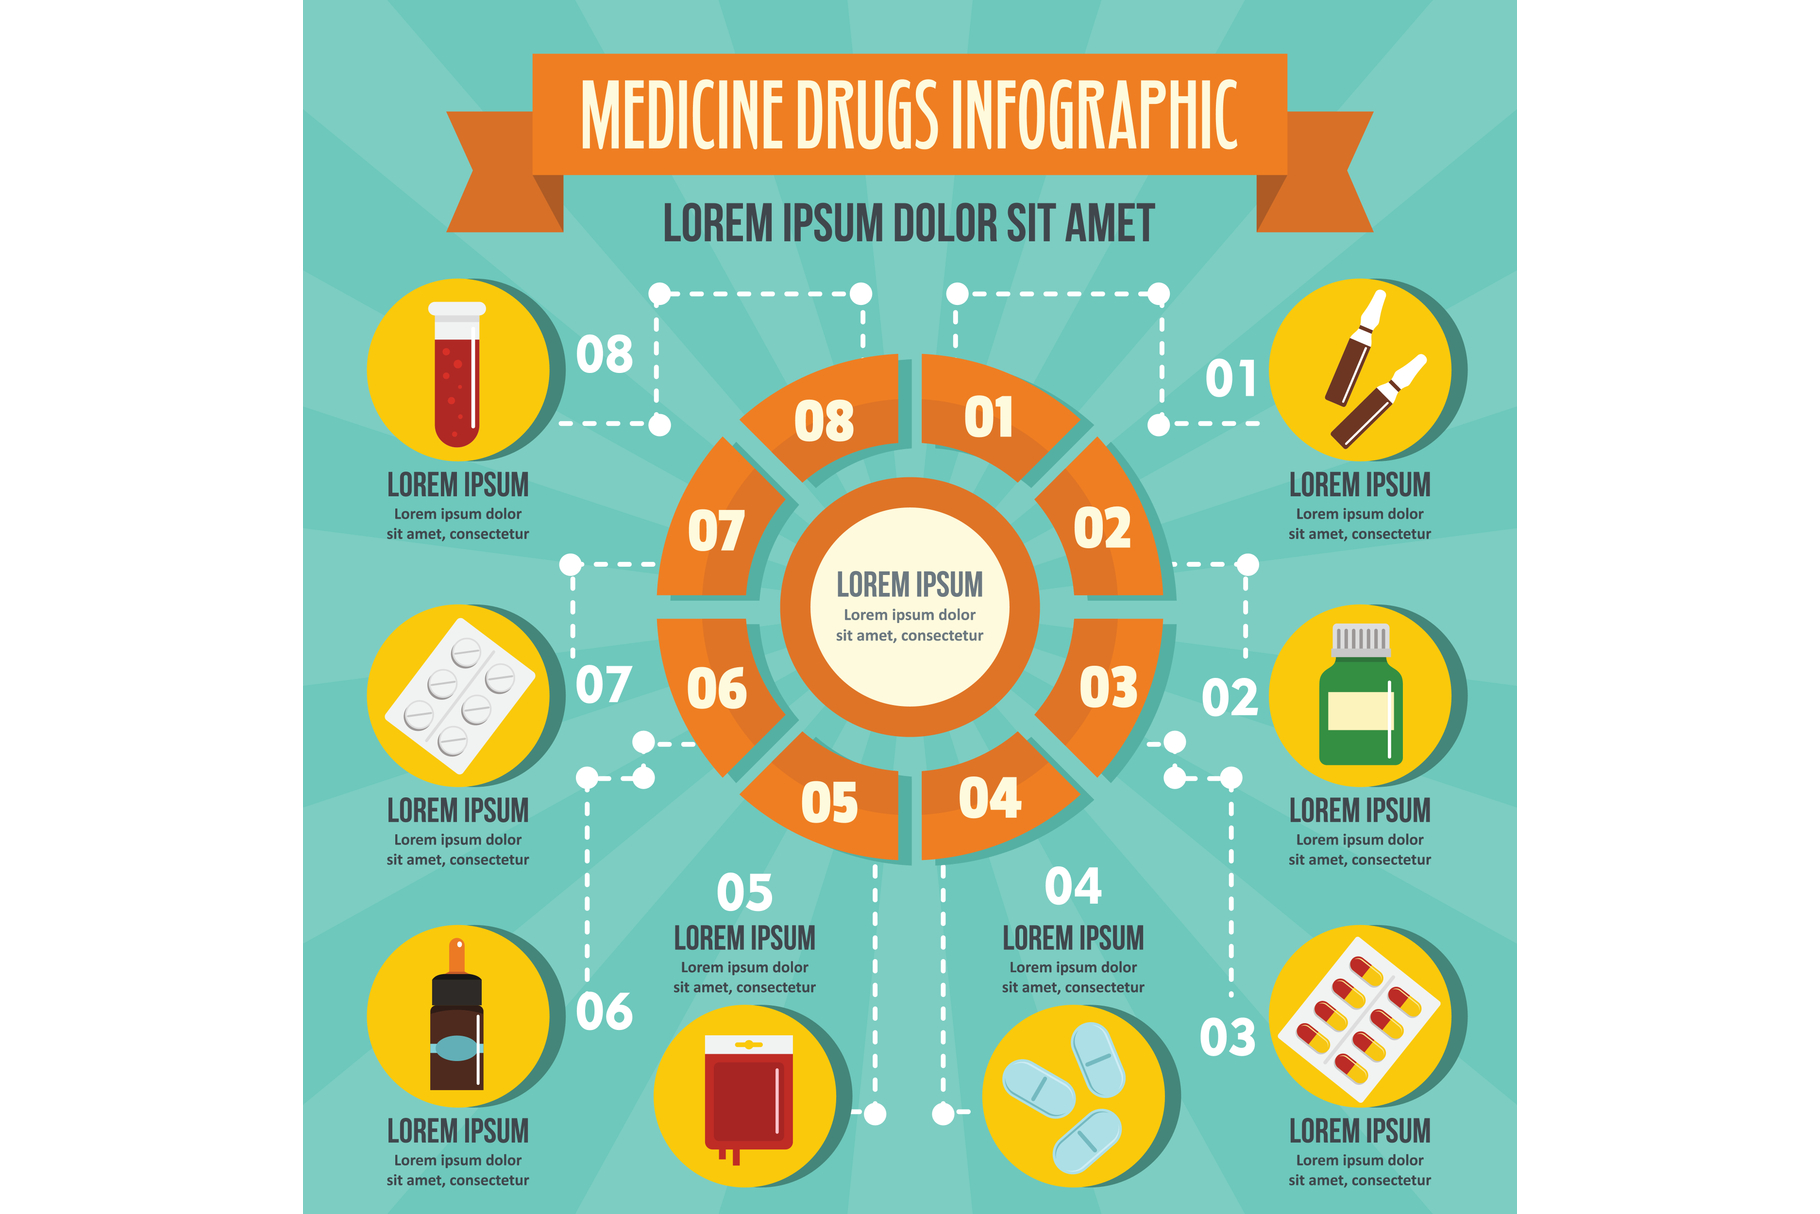 Medicine drugs infographic concept, flat style example image 1